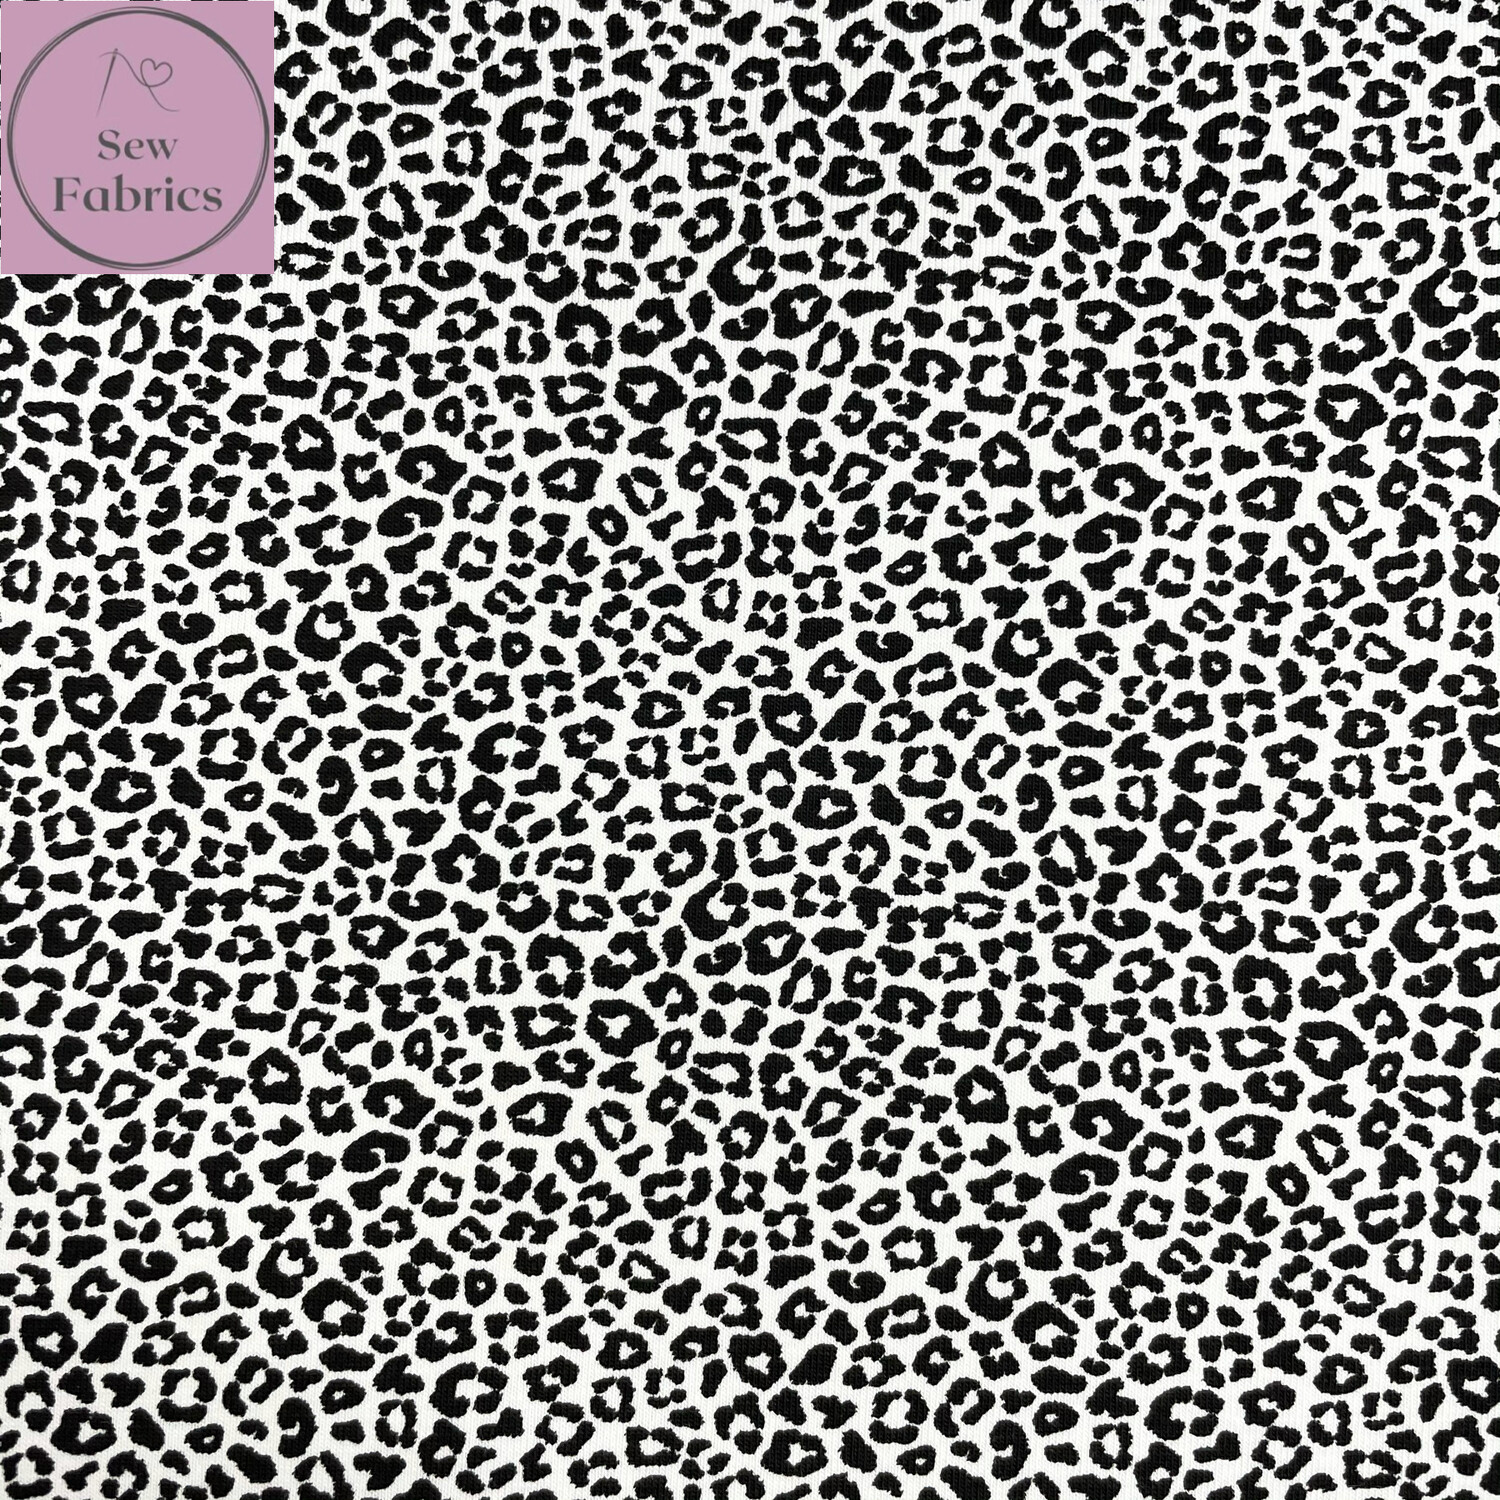 Rose & Hubble White Leopard Print Cotton Jersey Fabric, Animal Print Material